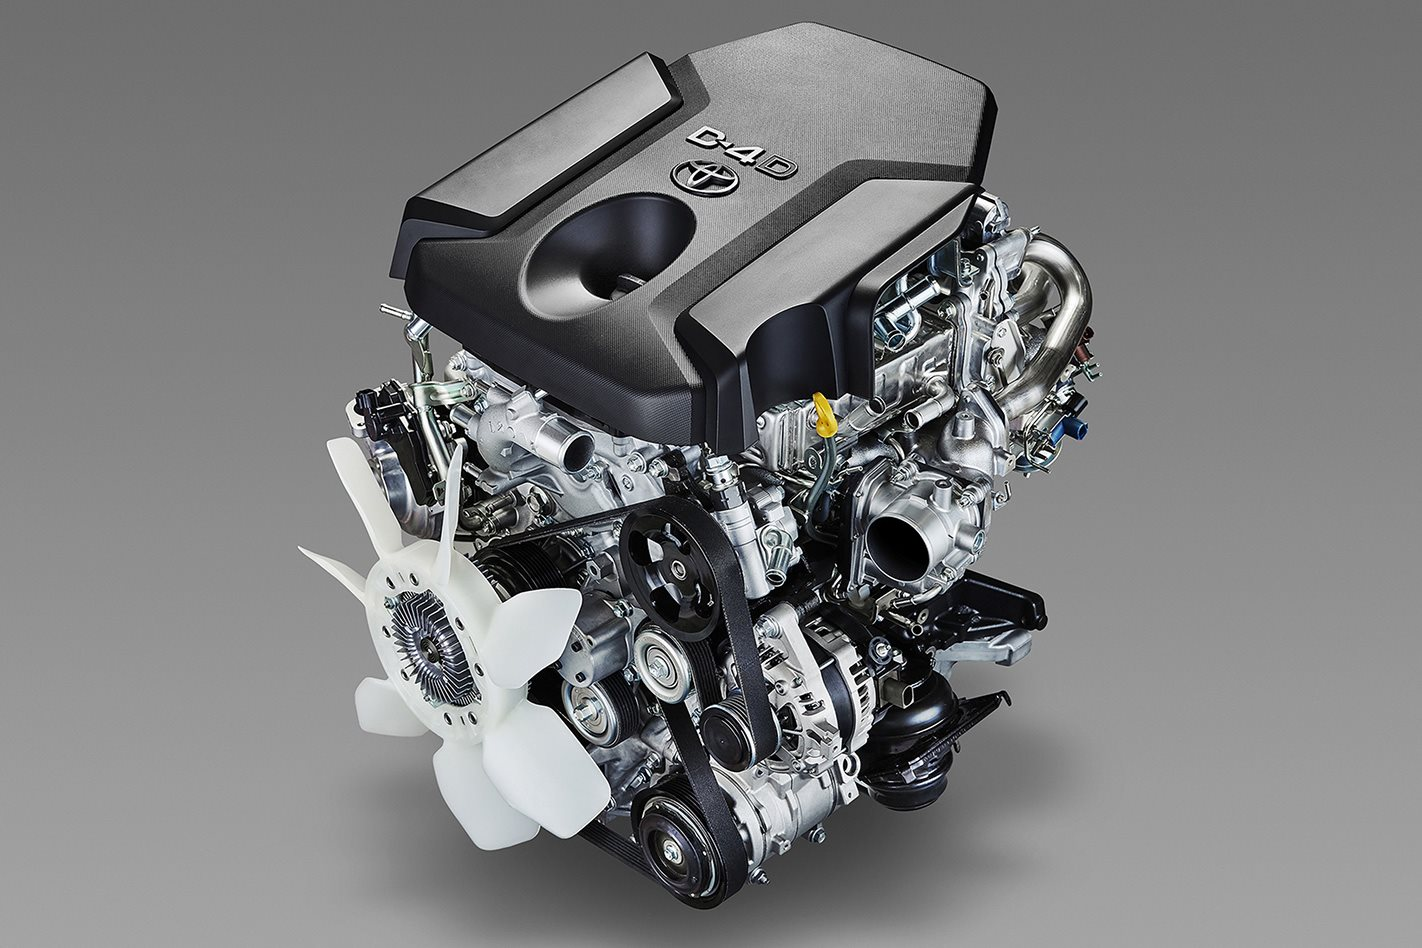 Litre Diesel Tech Torque The New 2 8 Litre Diesel For Toyota 4x4s